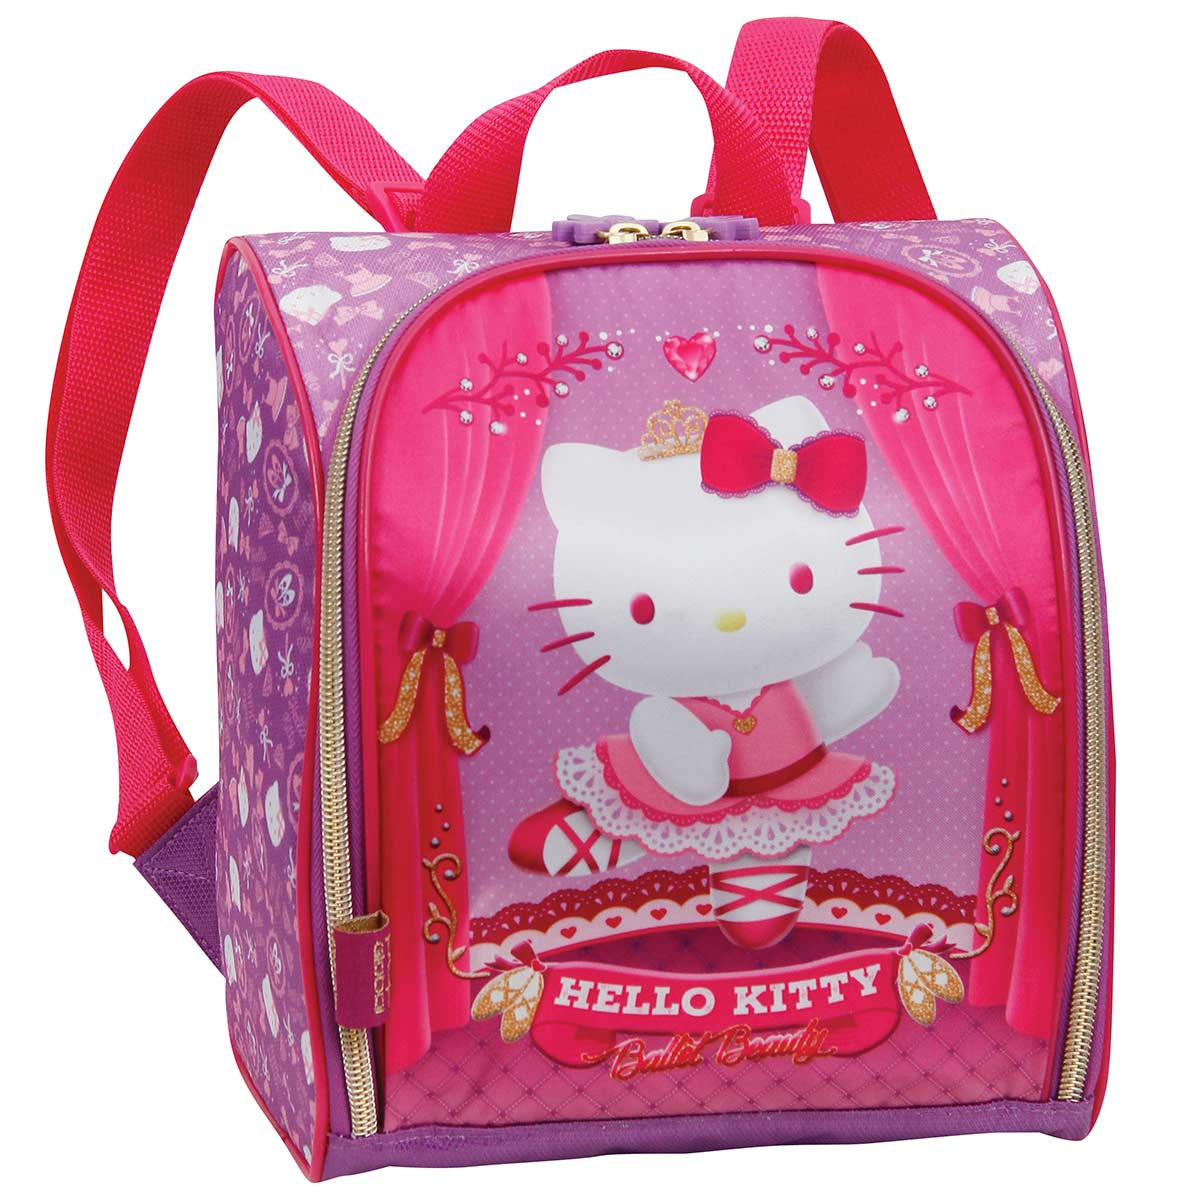 Lancheira com Acess�rios Hello Kitty Ballet